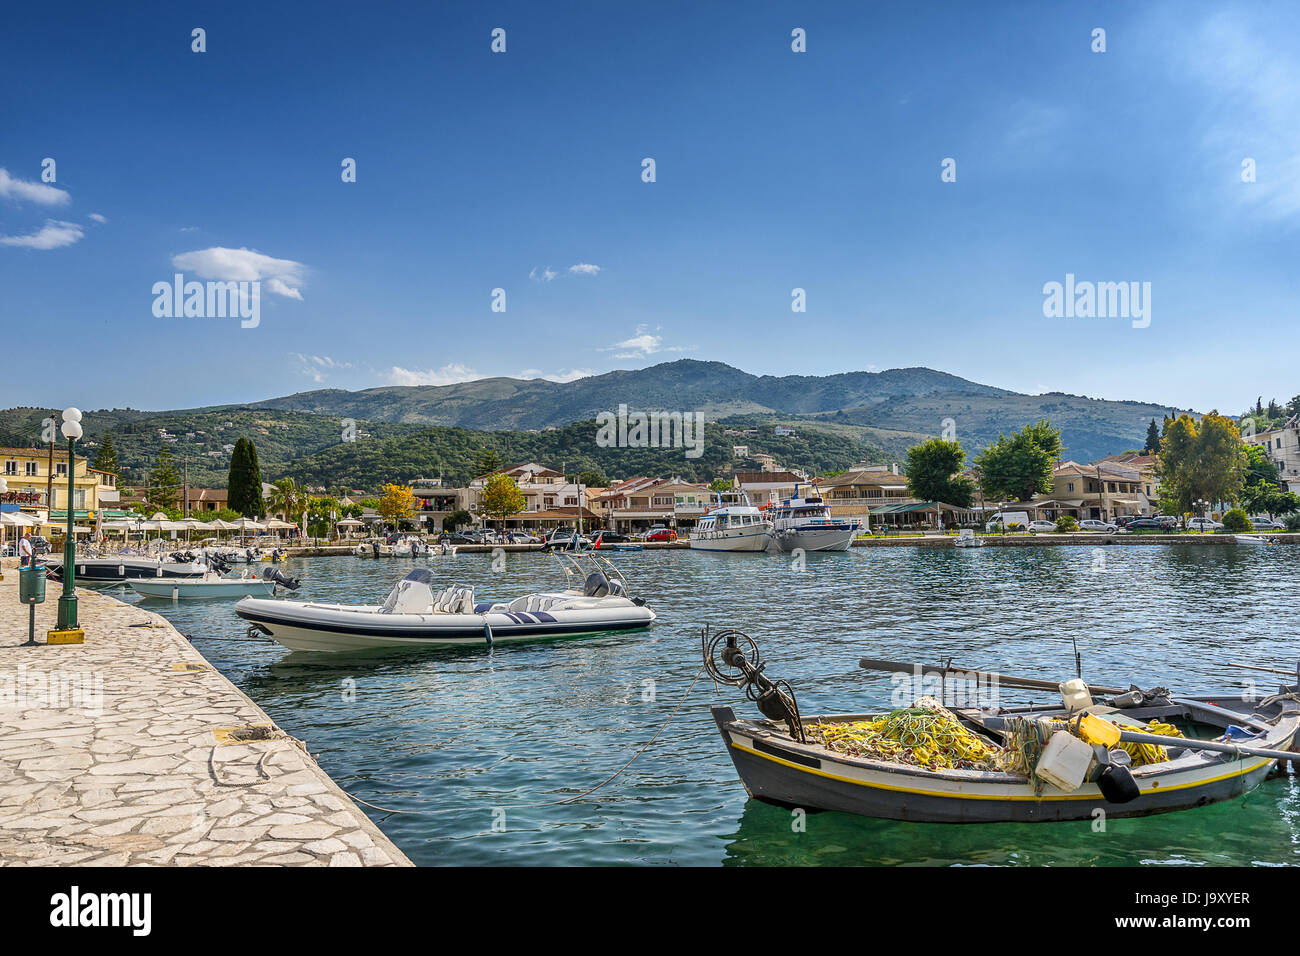 The small tourist village of Kassioppi in north east Corfu - Stock Image